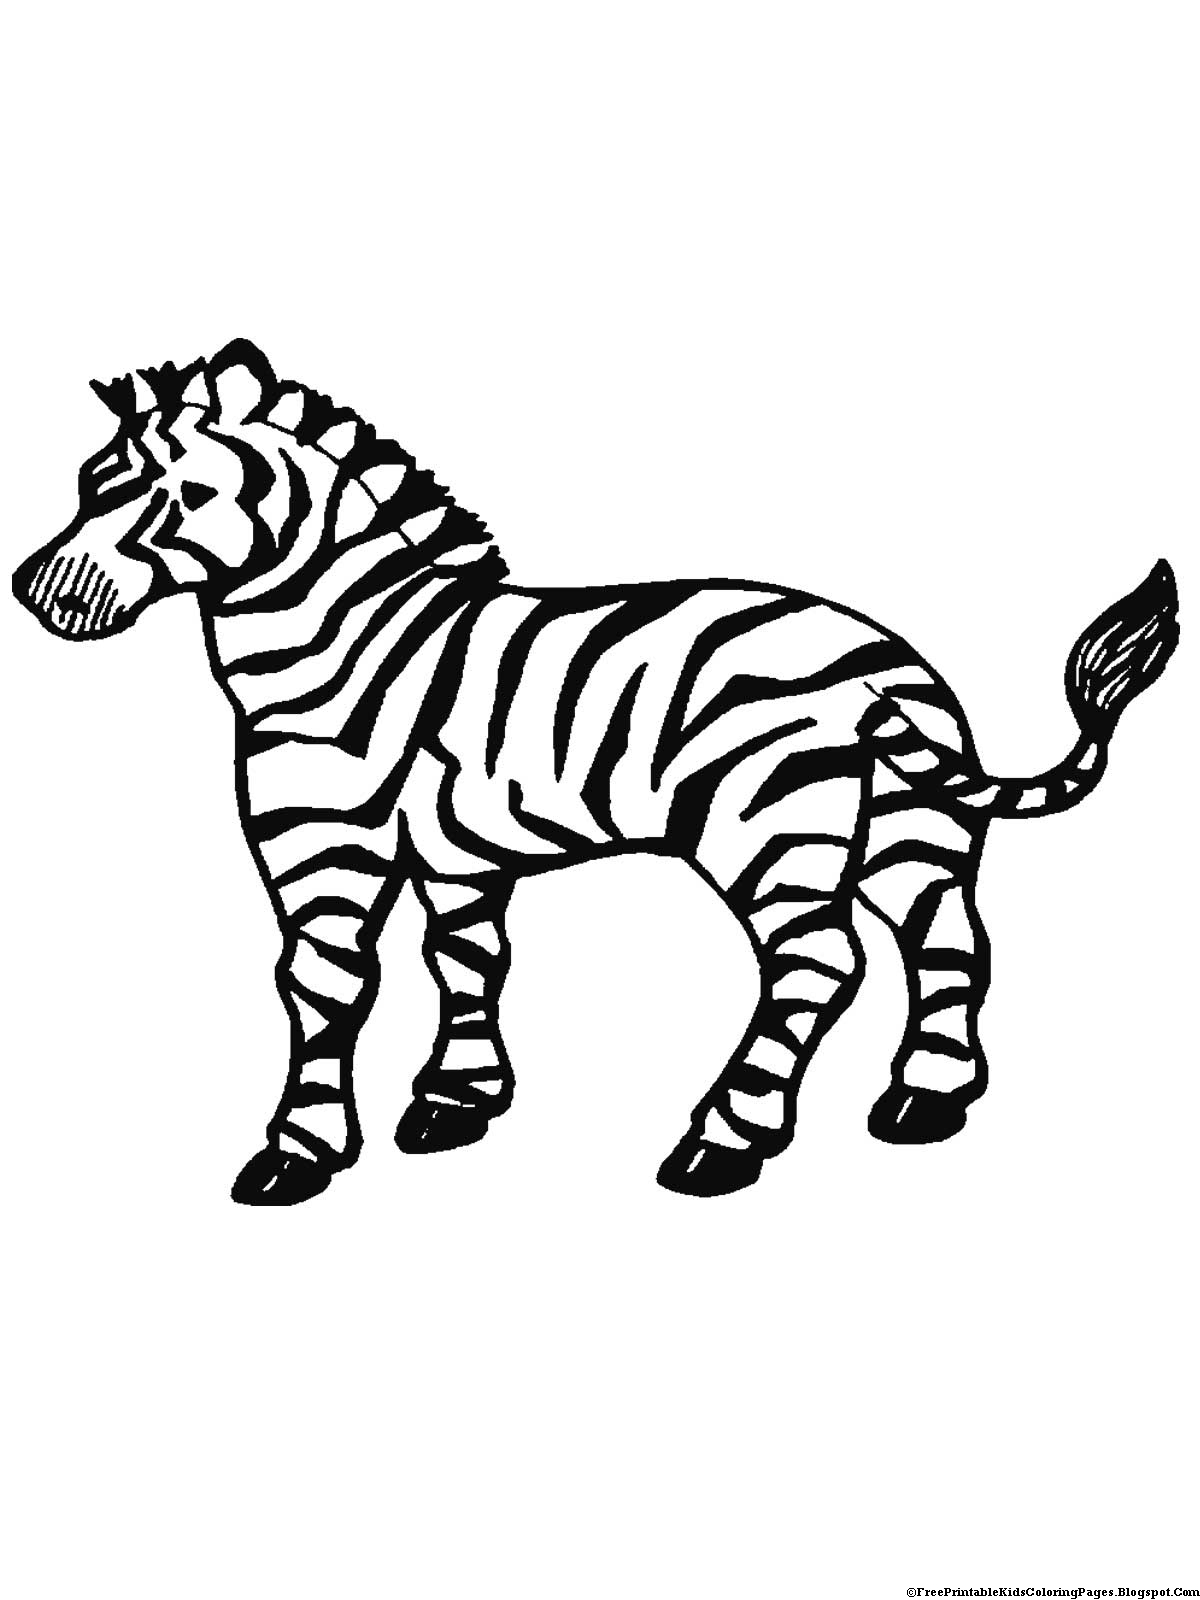 Geeky image intended for zebra coloring pages printable